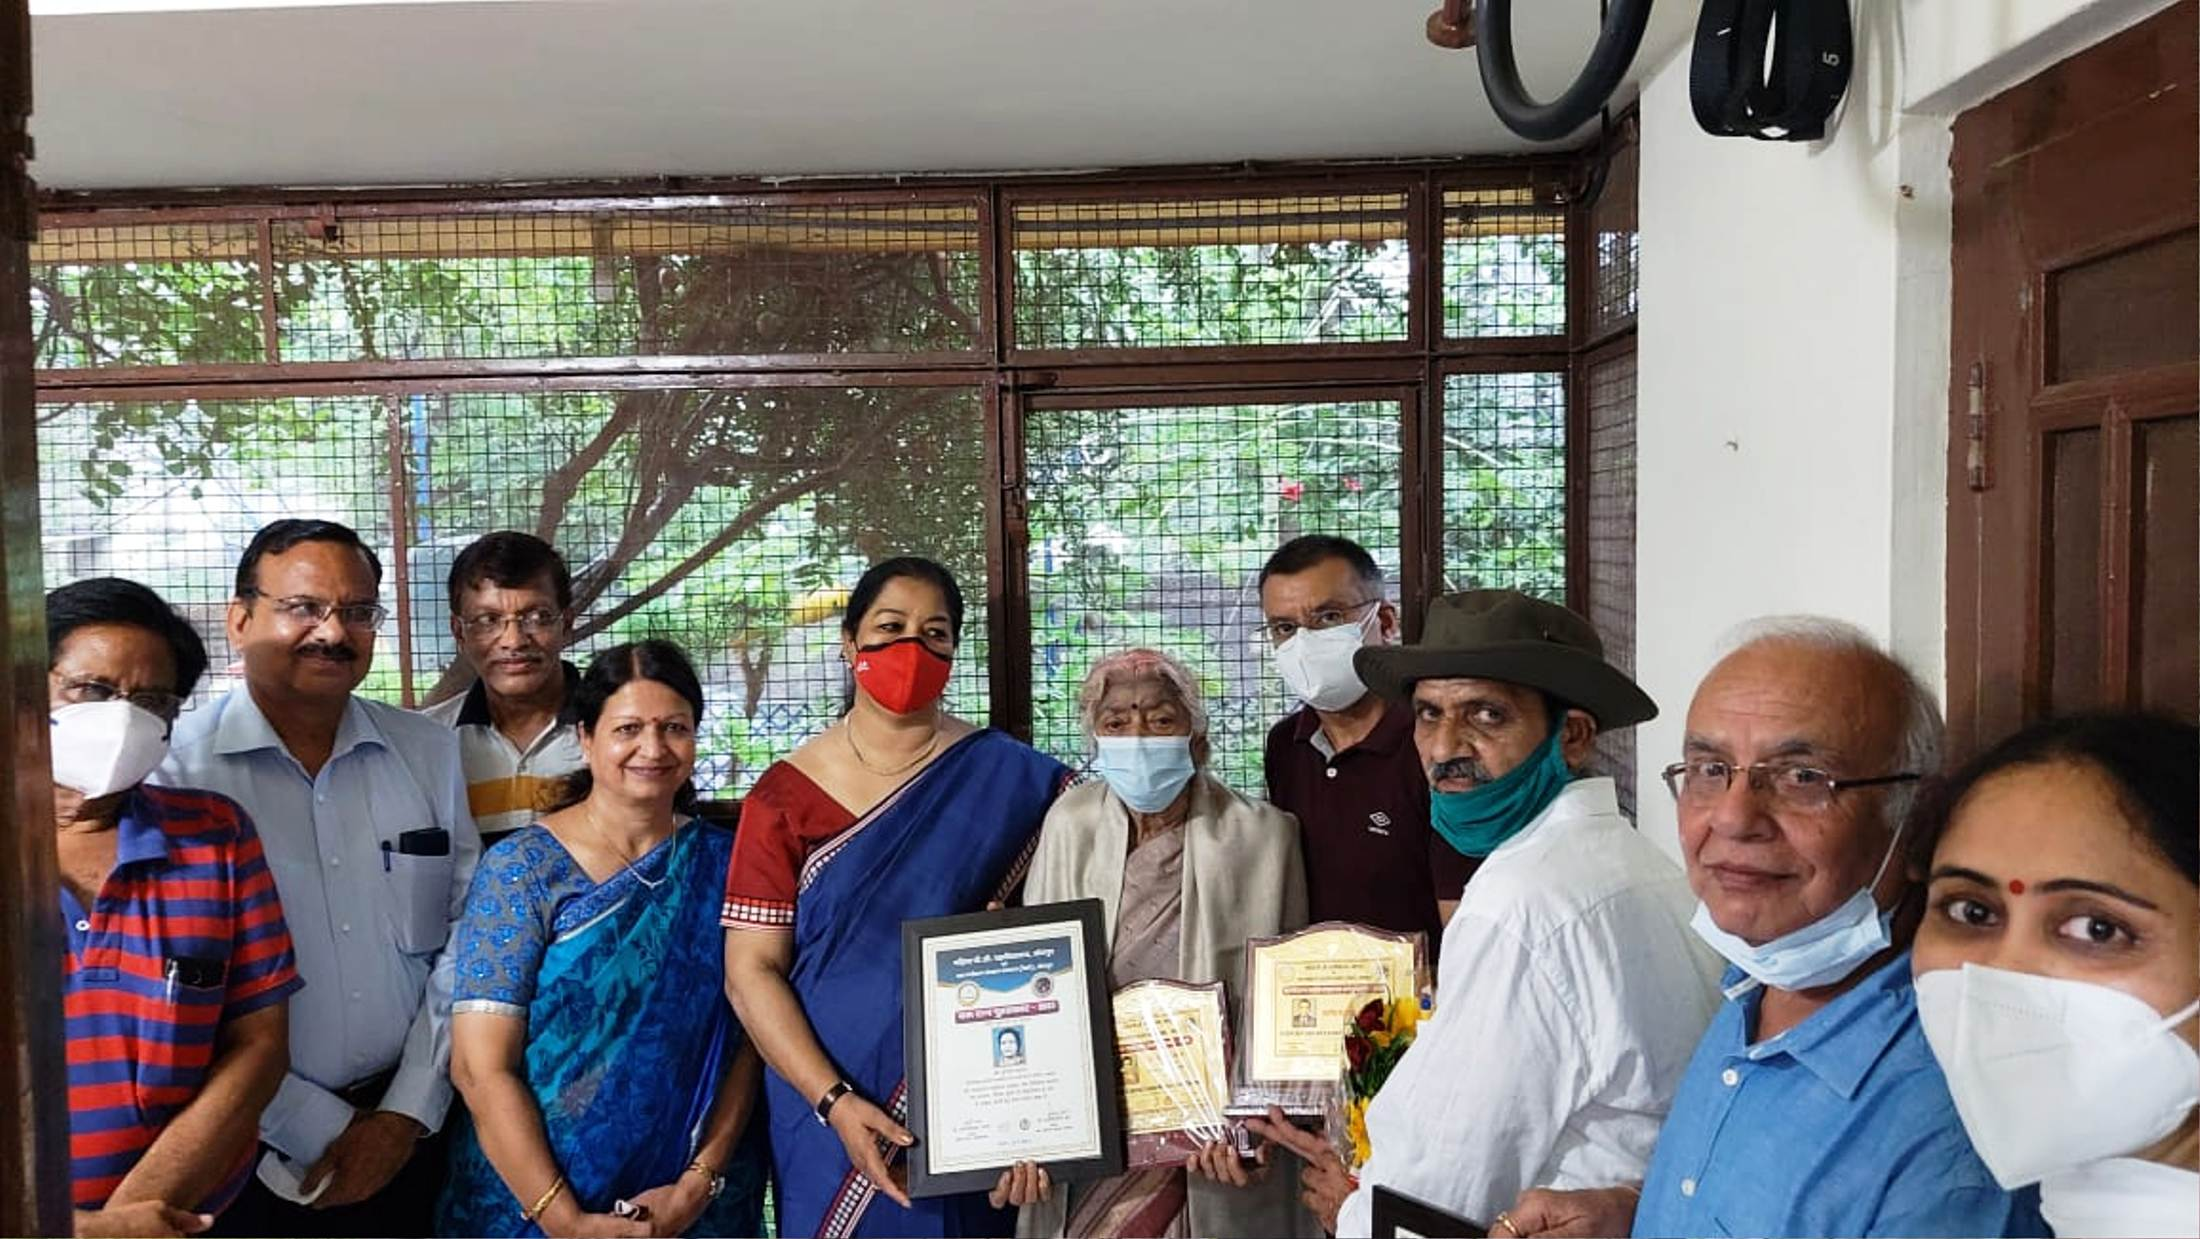 Prof. Indira Vyas was honored with Lifetime 'Maru Ratna.'